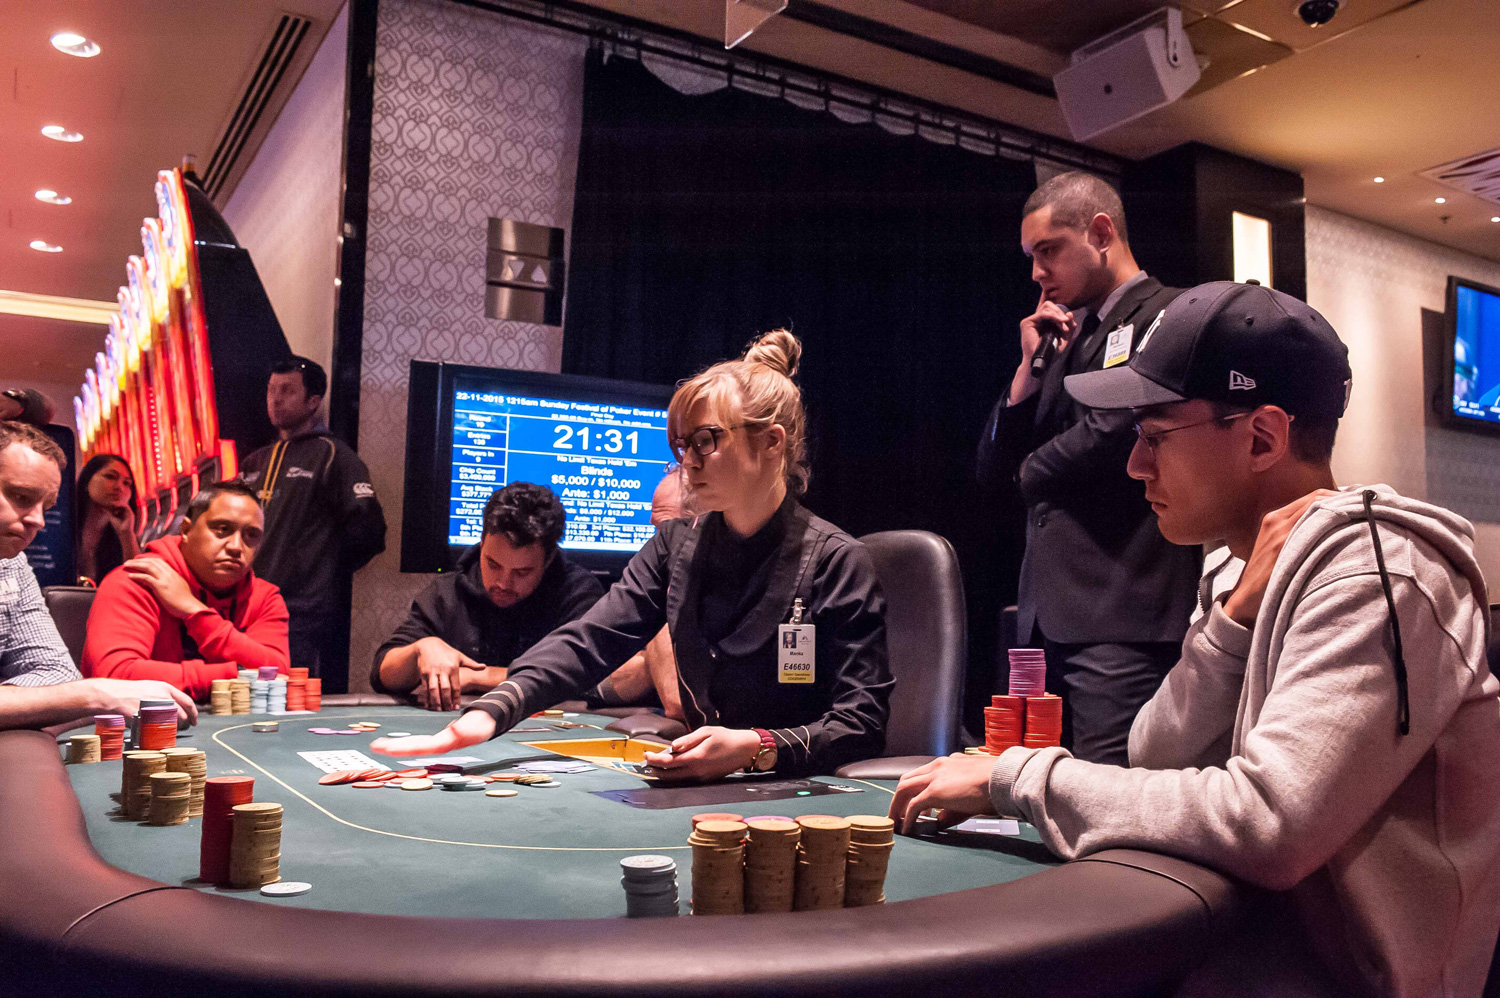 Tamihana and Lowrie face off at the main event's final table.